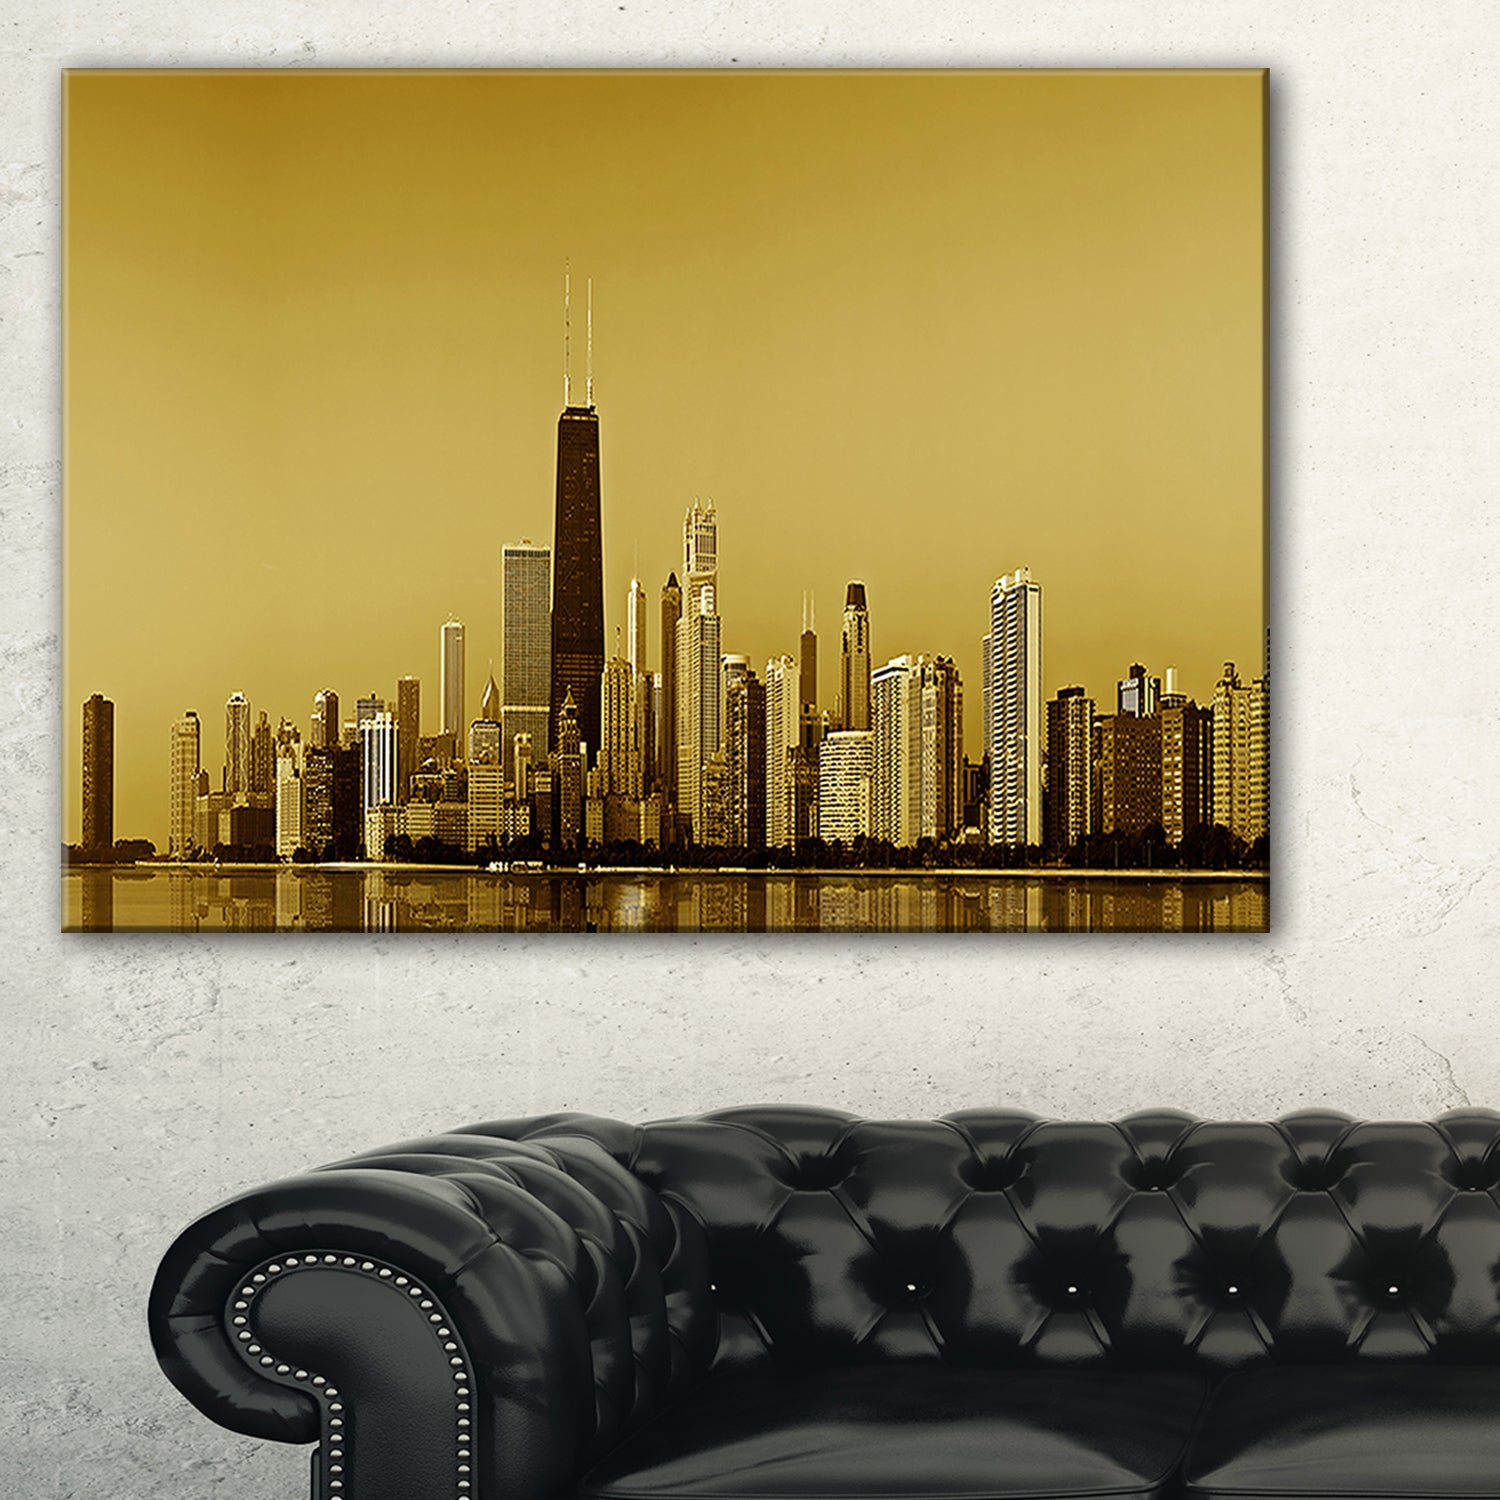 Dorable Cityscape Wall Art Frieze - Art & Wall Decor - hecatalog.info